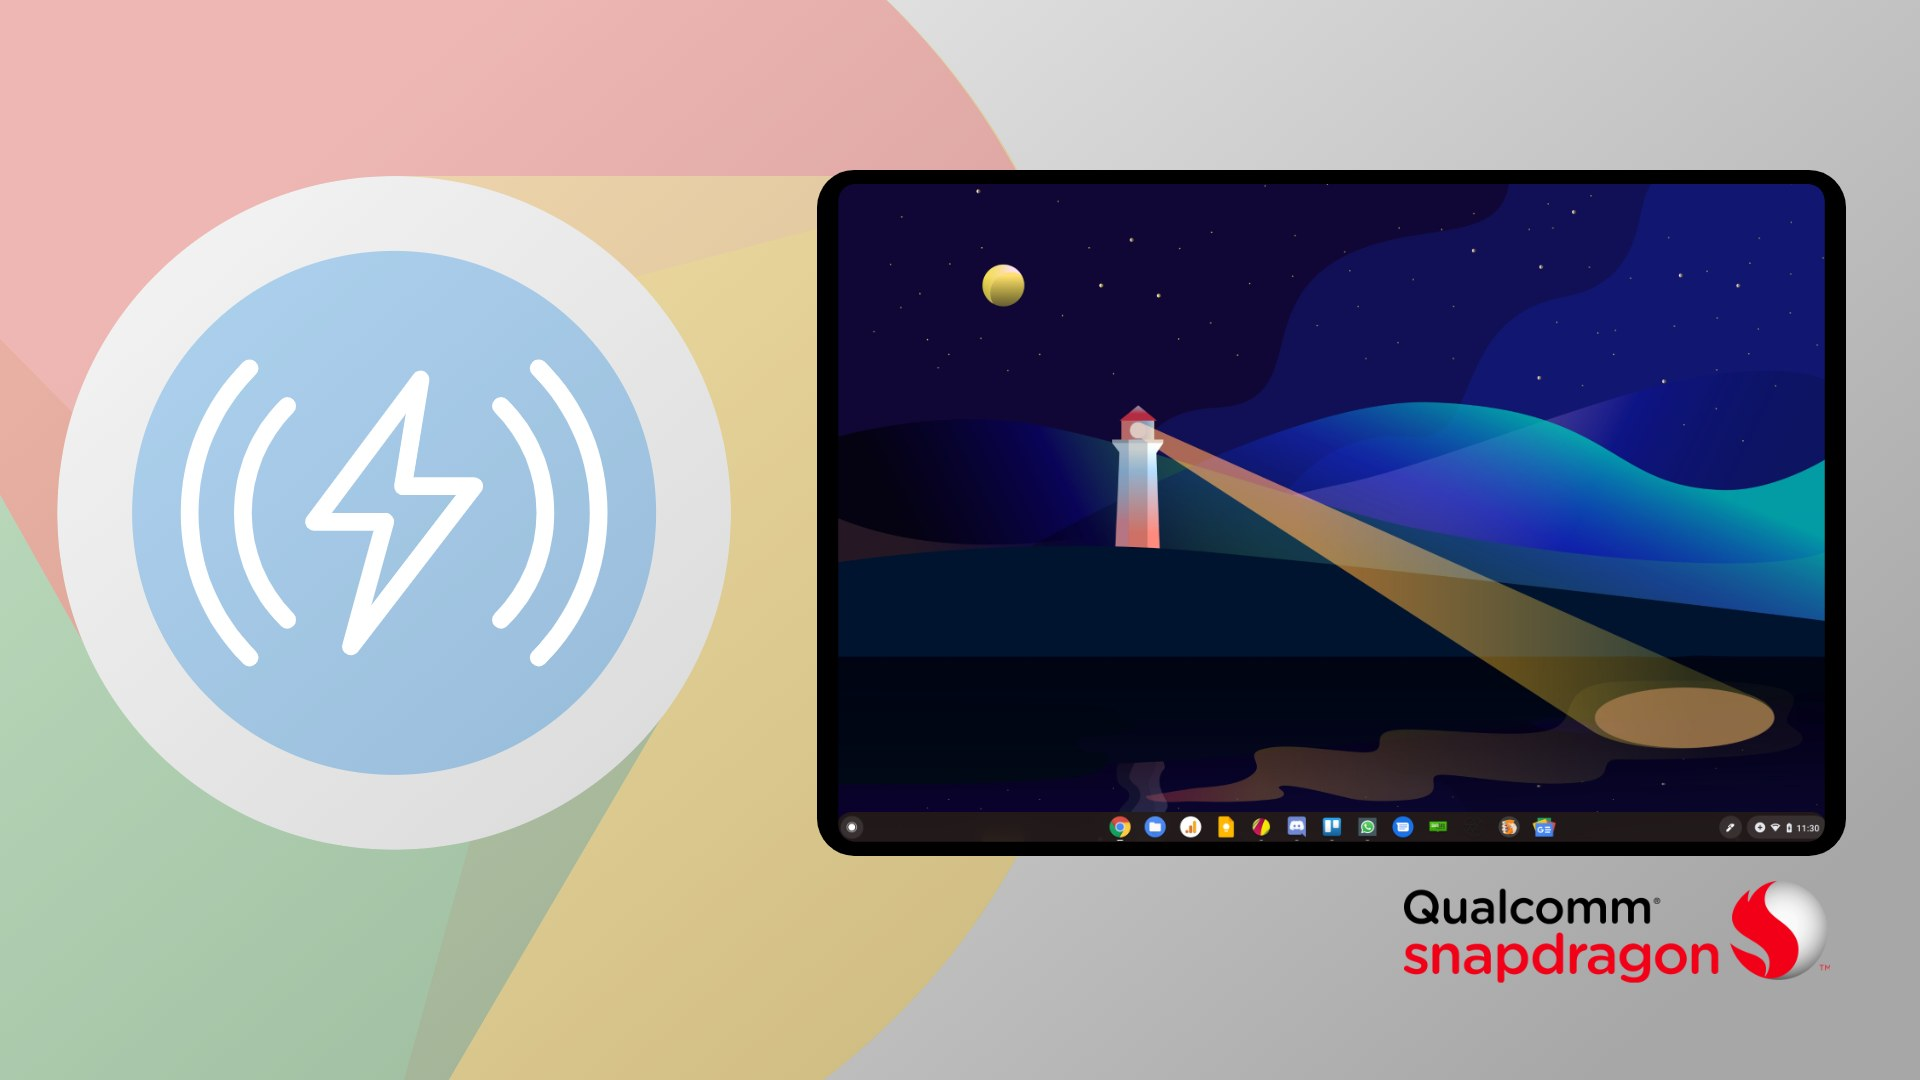 First Snapdragon 7c Chromebook tablet 'Coachz' will have reverse wireless charging for accessories